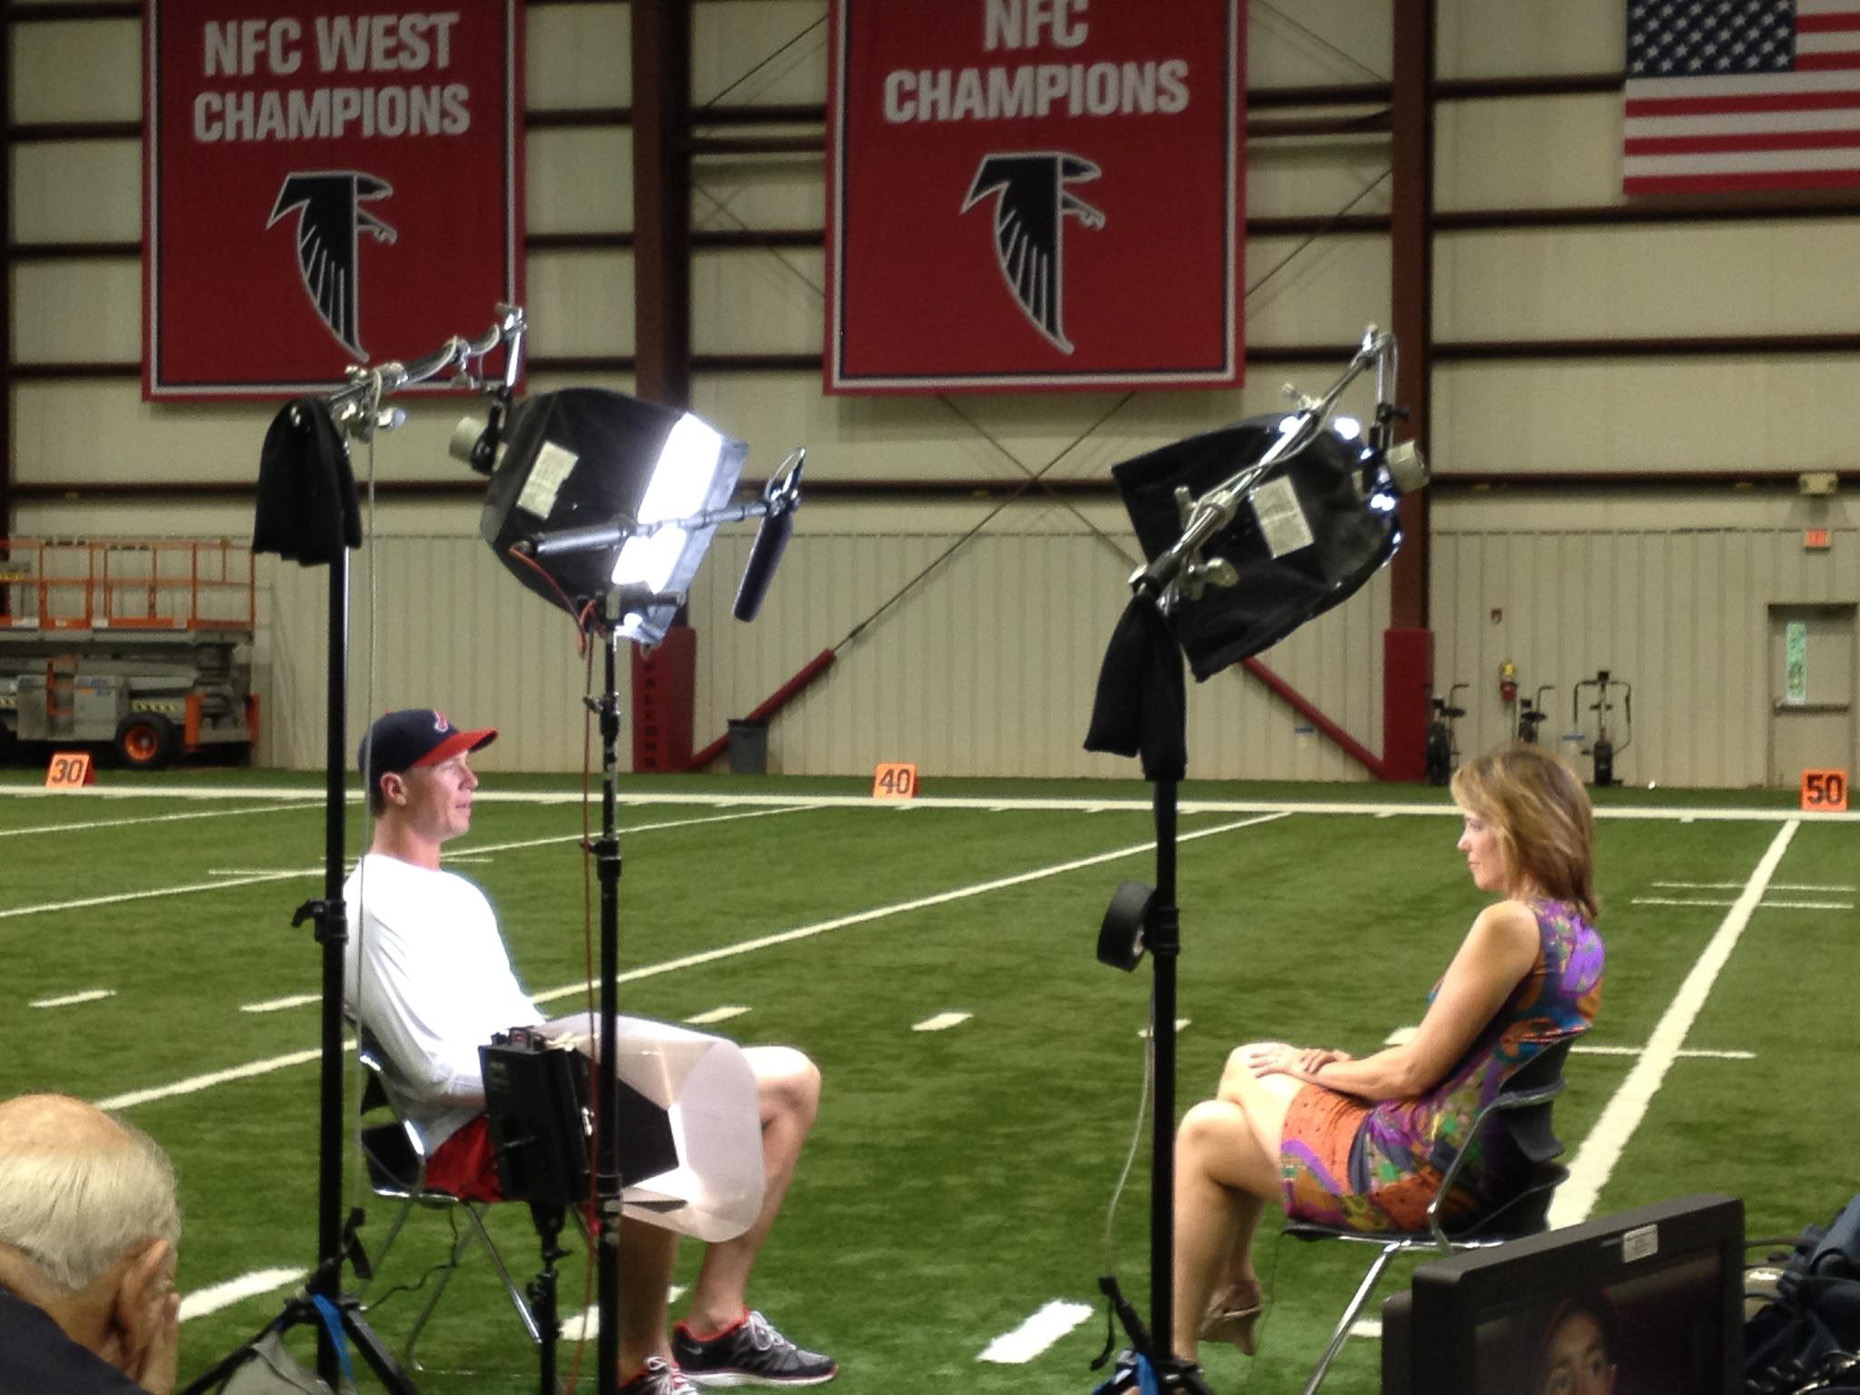 matt_ryan_falcons_football_makeup_meredith_boyd_atlatlanta_nfl_espn